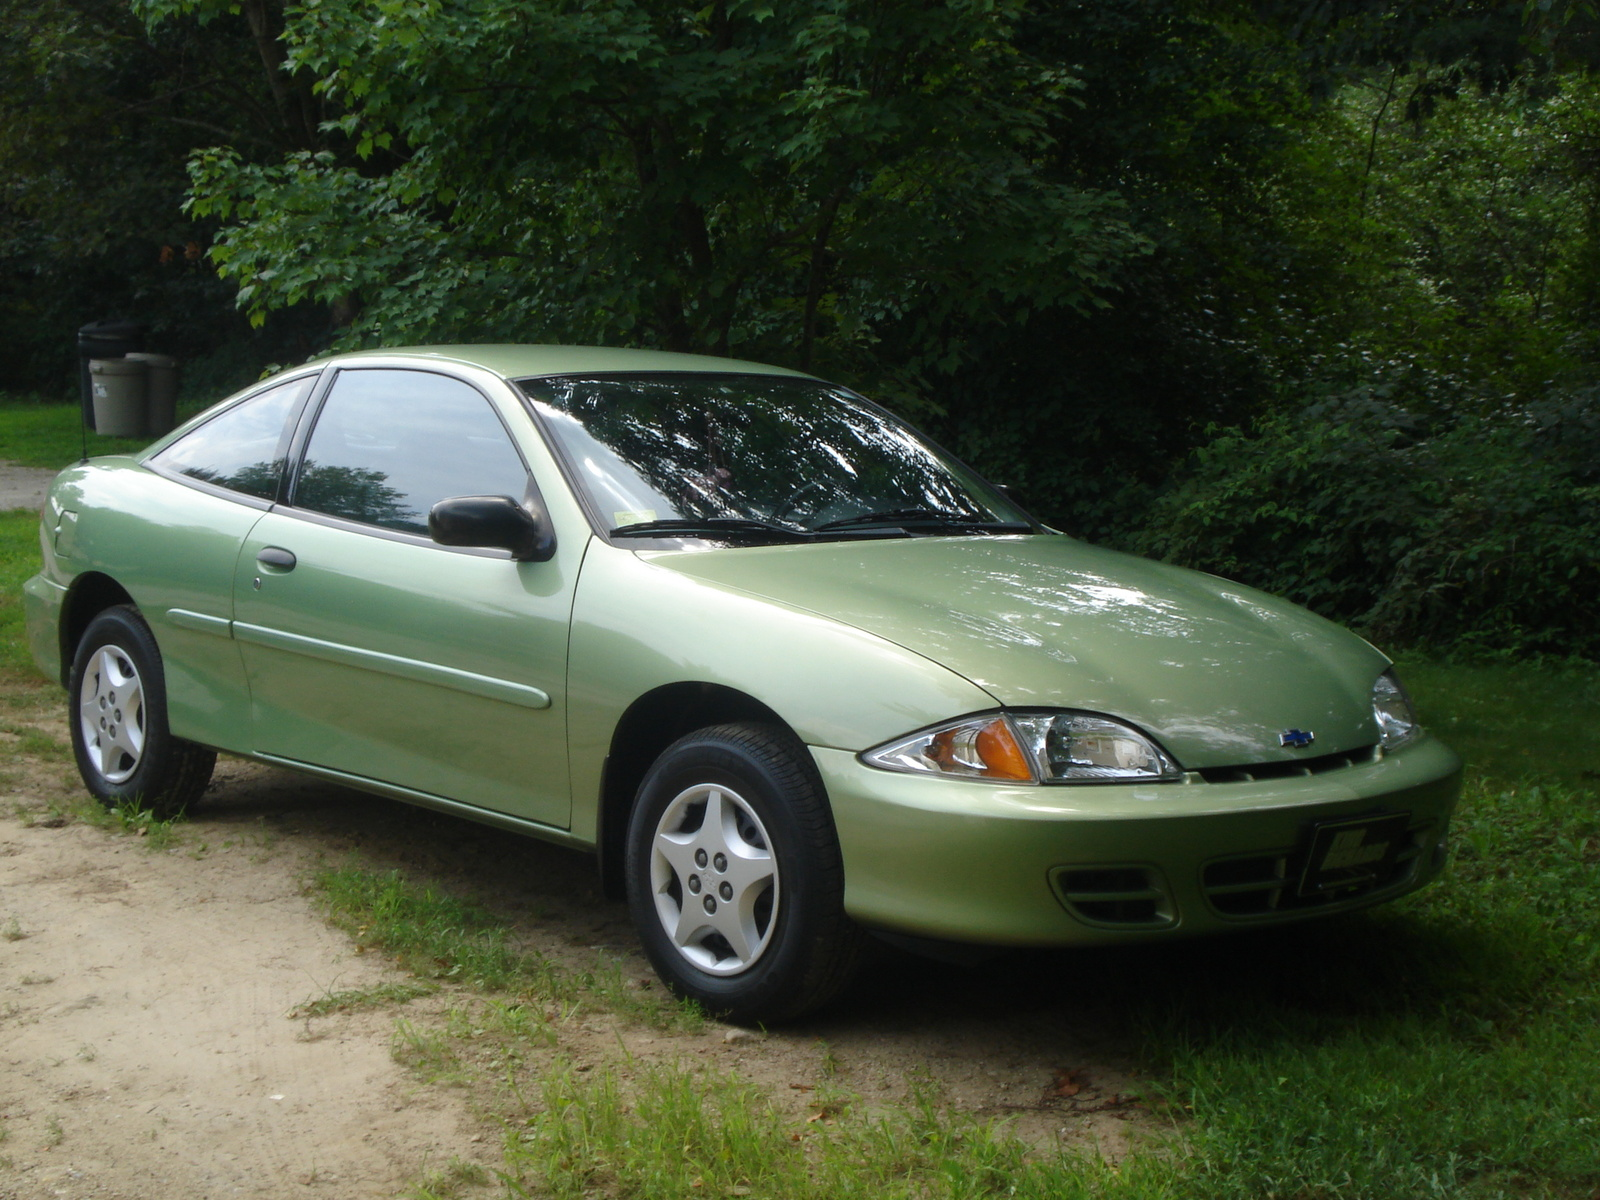 2002 Chevrolet Cavalier Base Coupe picture